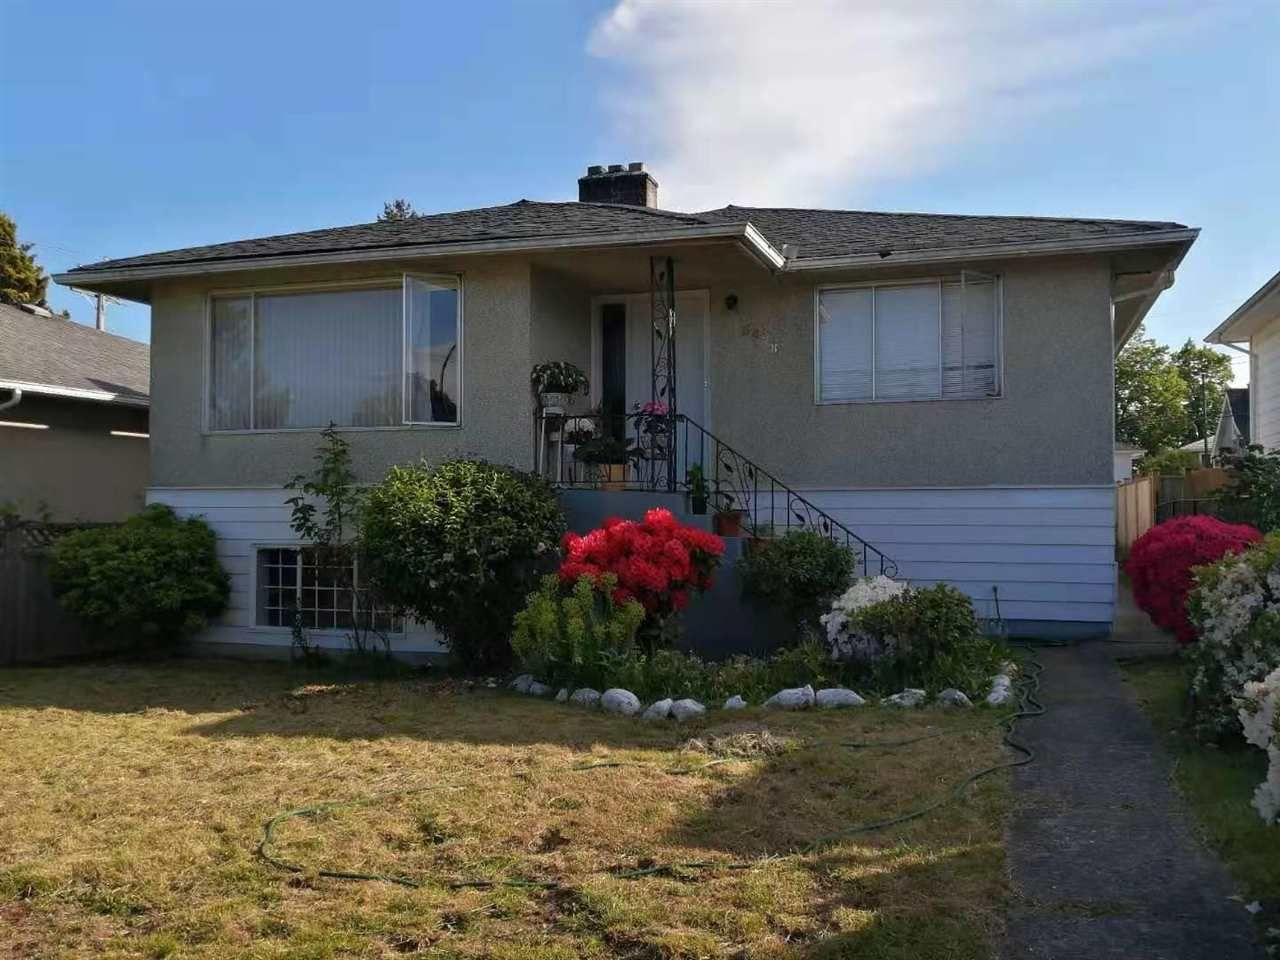 Main Photo: 3478 TANNER Street in Vancouver: Collingwood VE House for sale (Vancouver East)  : MLS®# R2583330